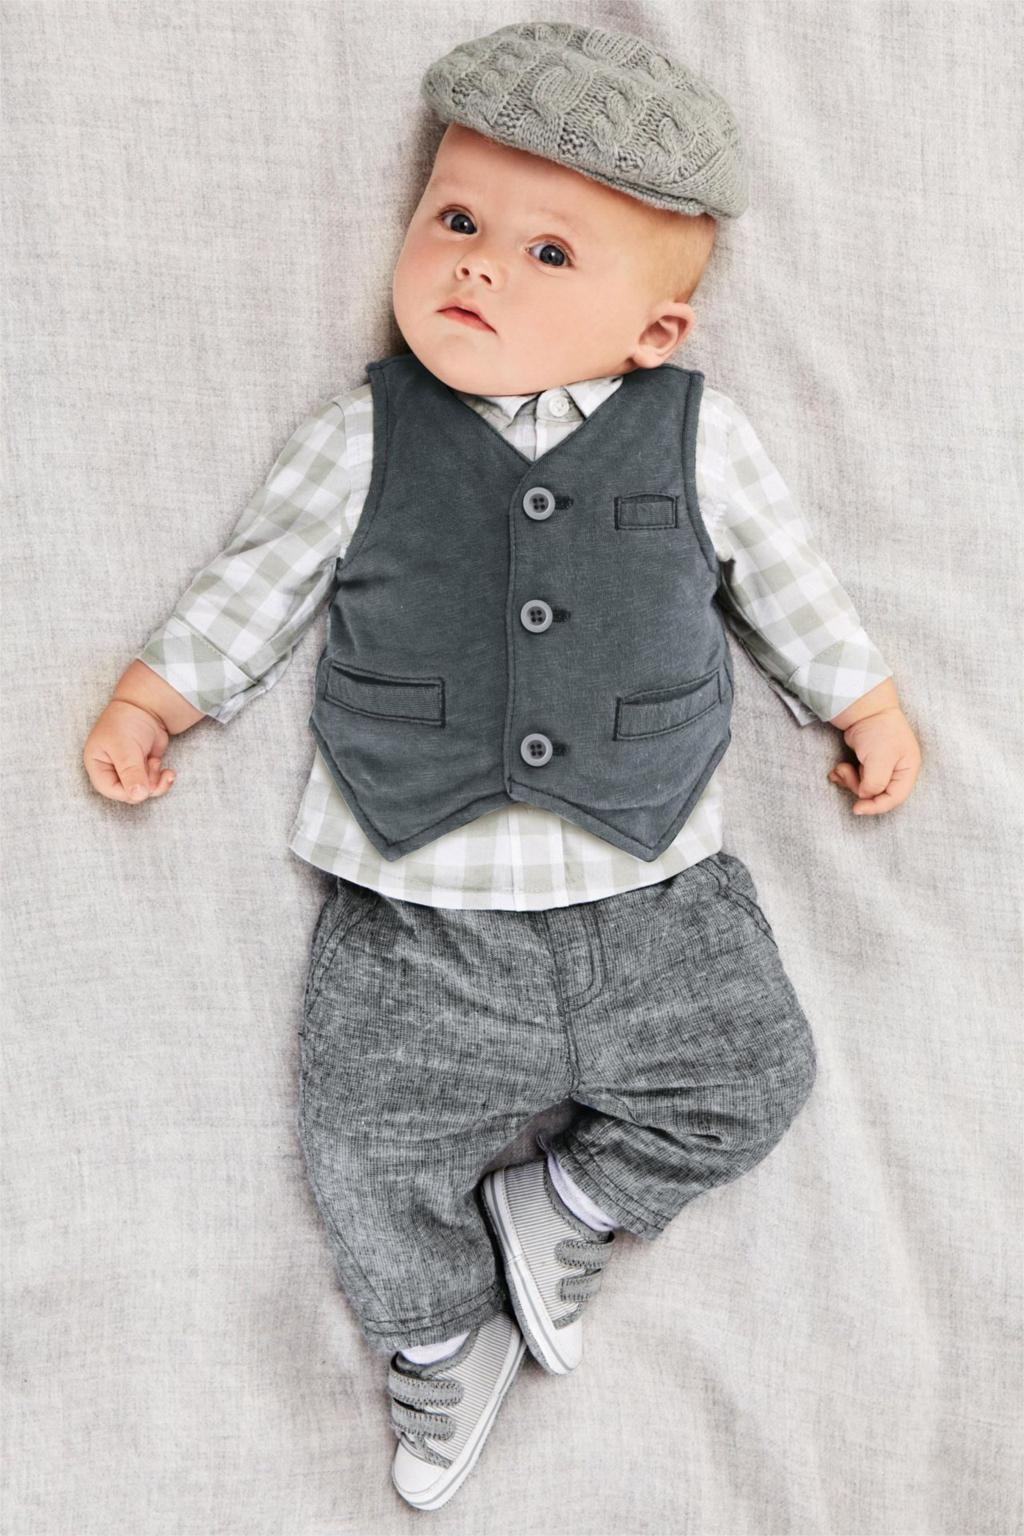 2015 Cute baby boy clothes 3pcs newborn boy outfits infant clothing set  spring autumn shirt with matching pants jeans Polo sets e8b9261bee58